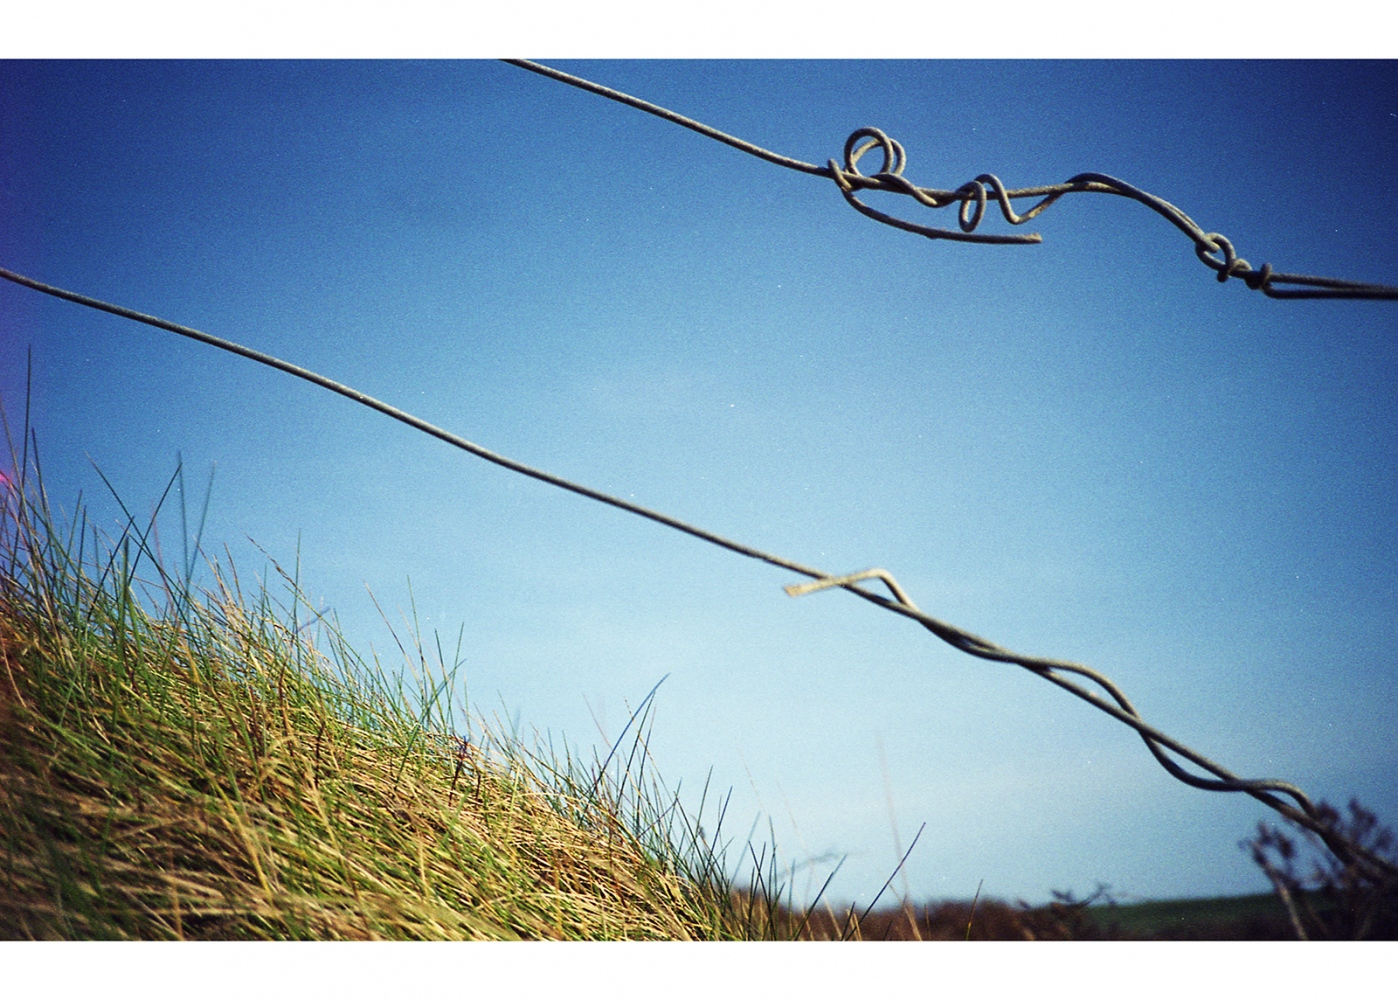 Wires on the Edge of a Field